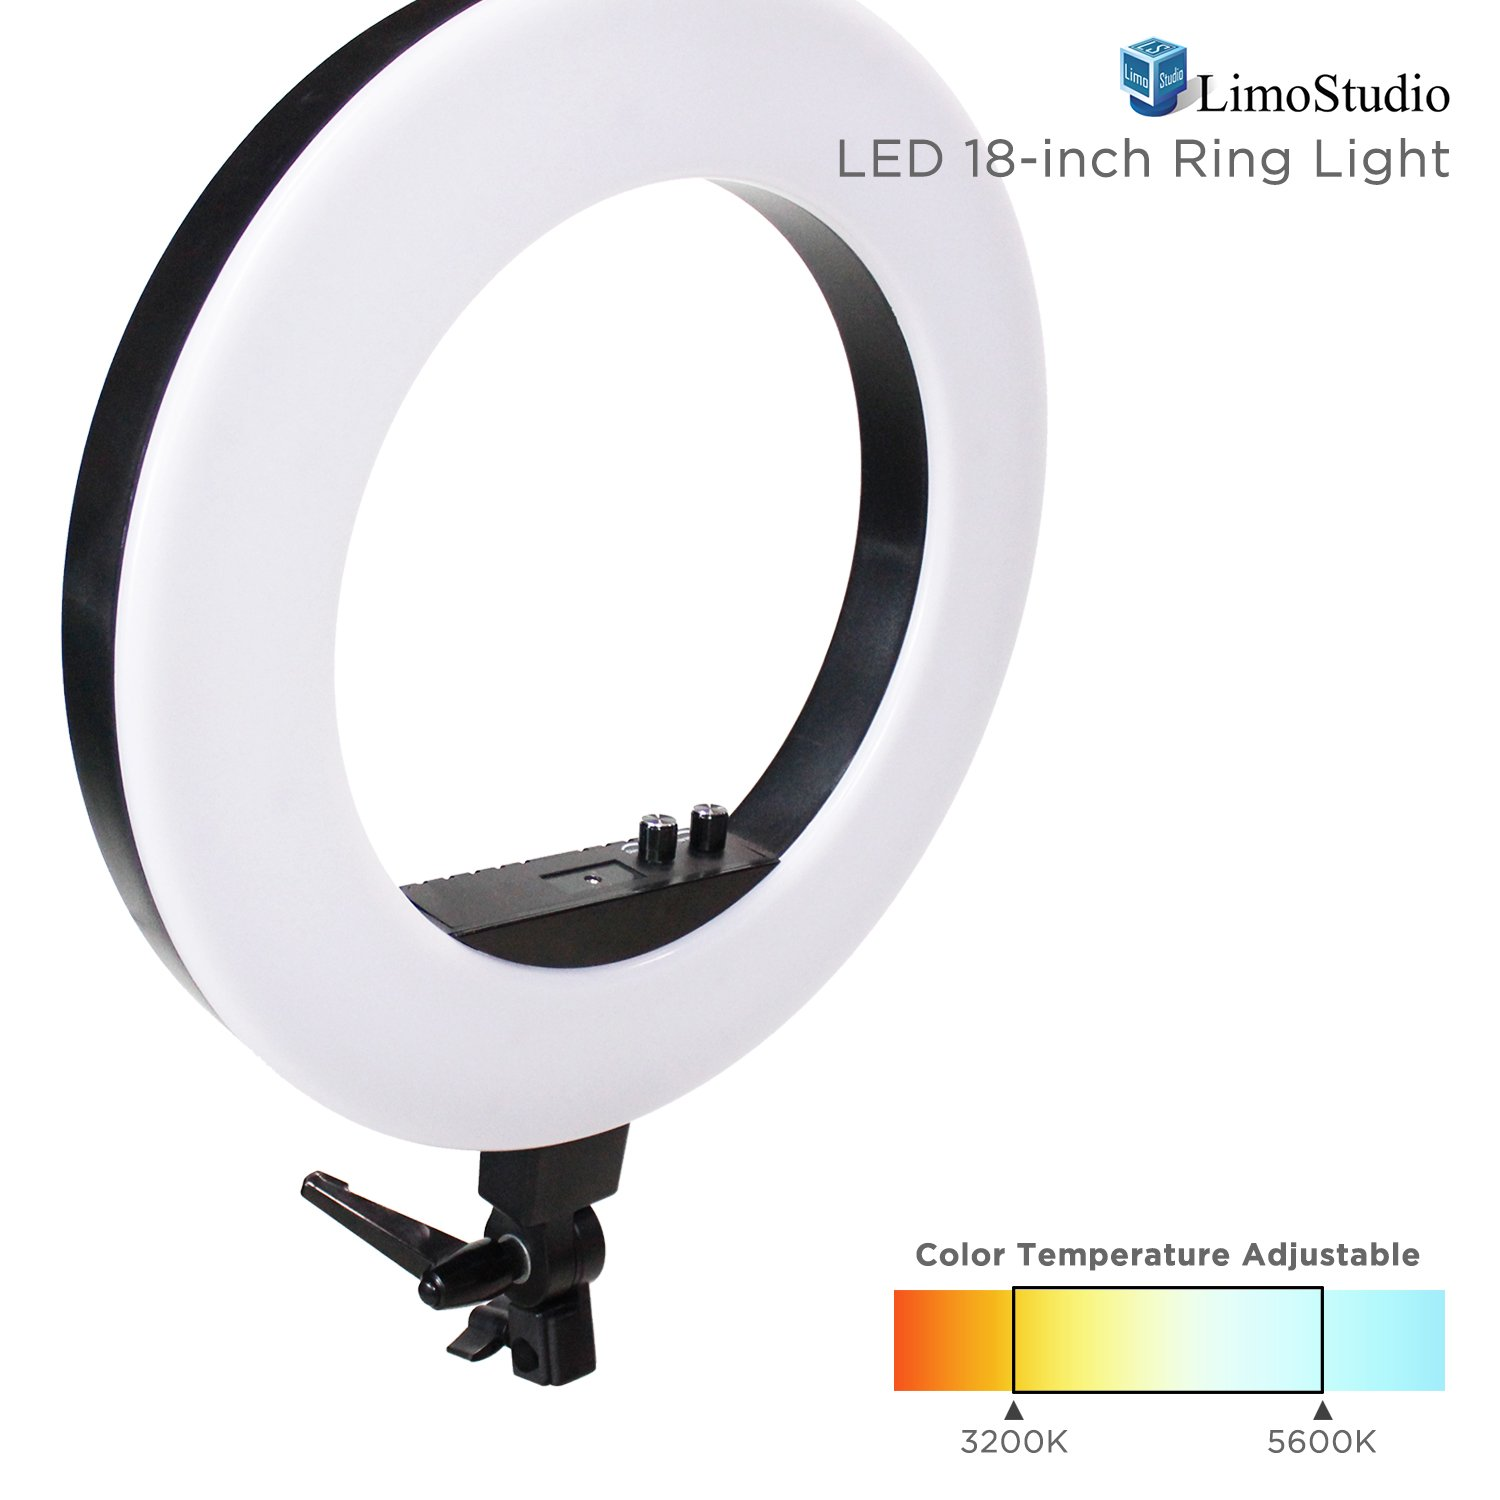 LimoStudio 18 Inch Bi-color LED Ring Light for Video & Photography, Color Temperature Adjustable & Brightness Control Dimmer Switch, Camera Mounting Adapter Bracket, AGG2394V3